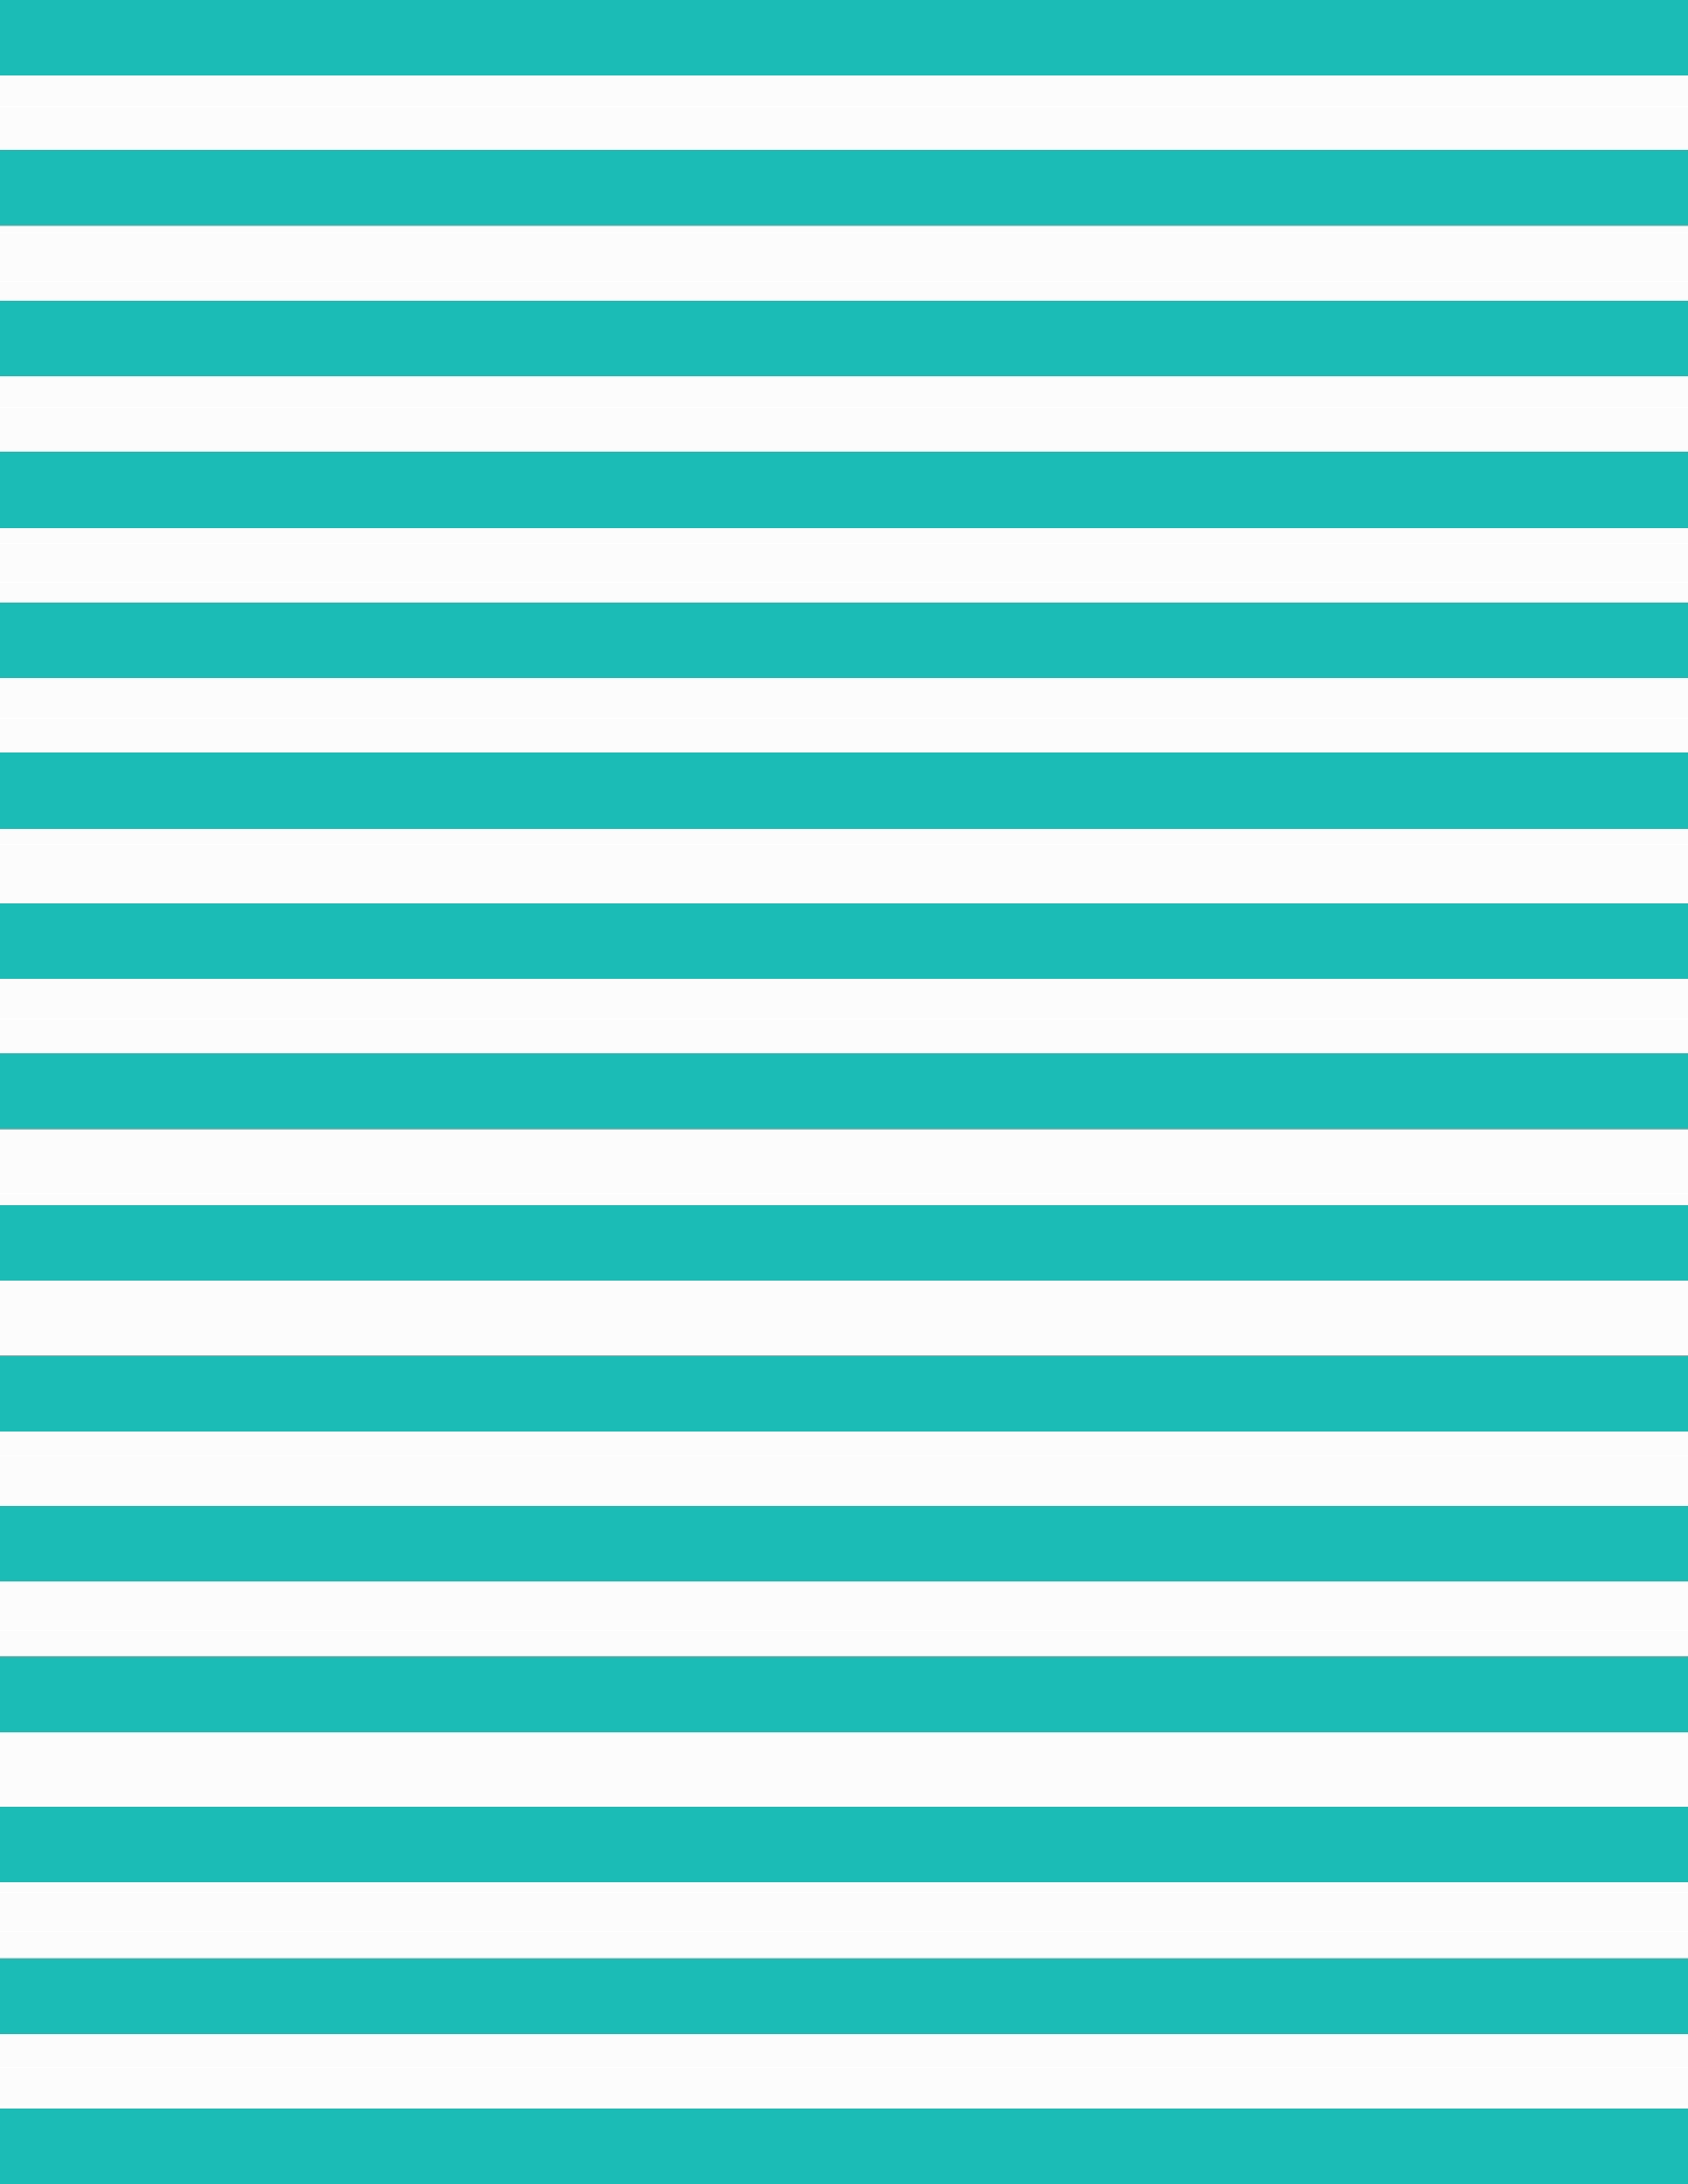 Floral Print Iphone Wallpaper Striped Background